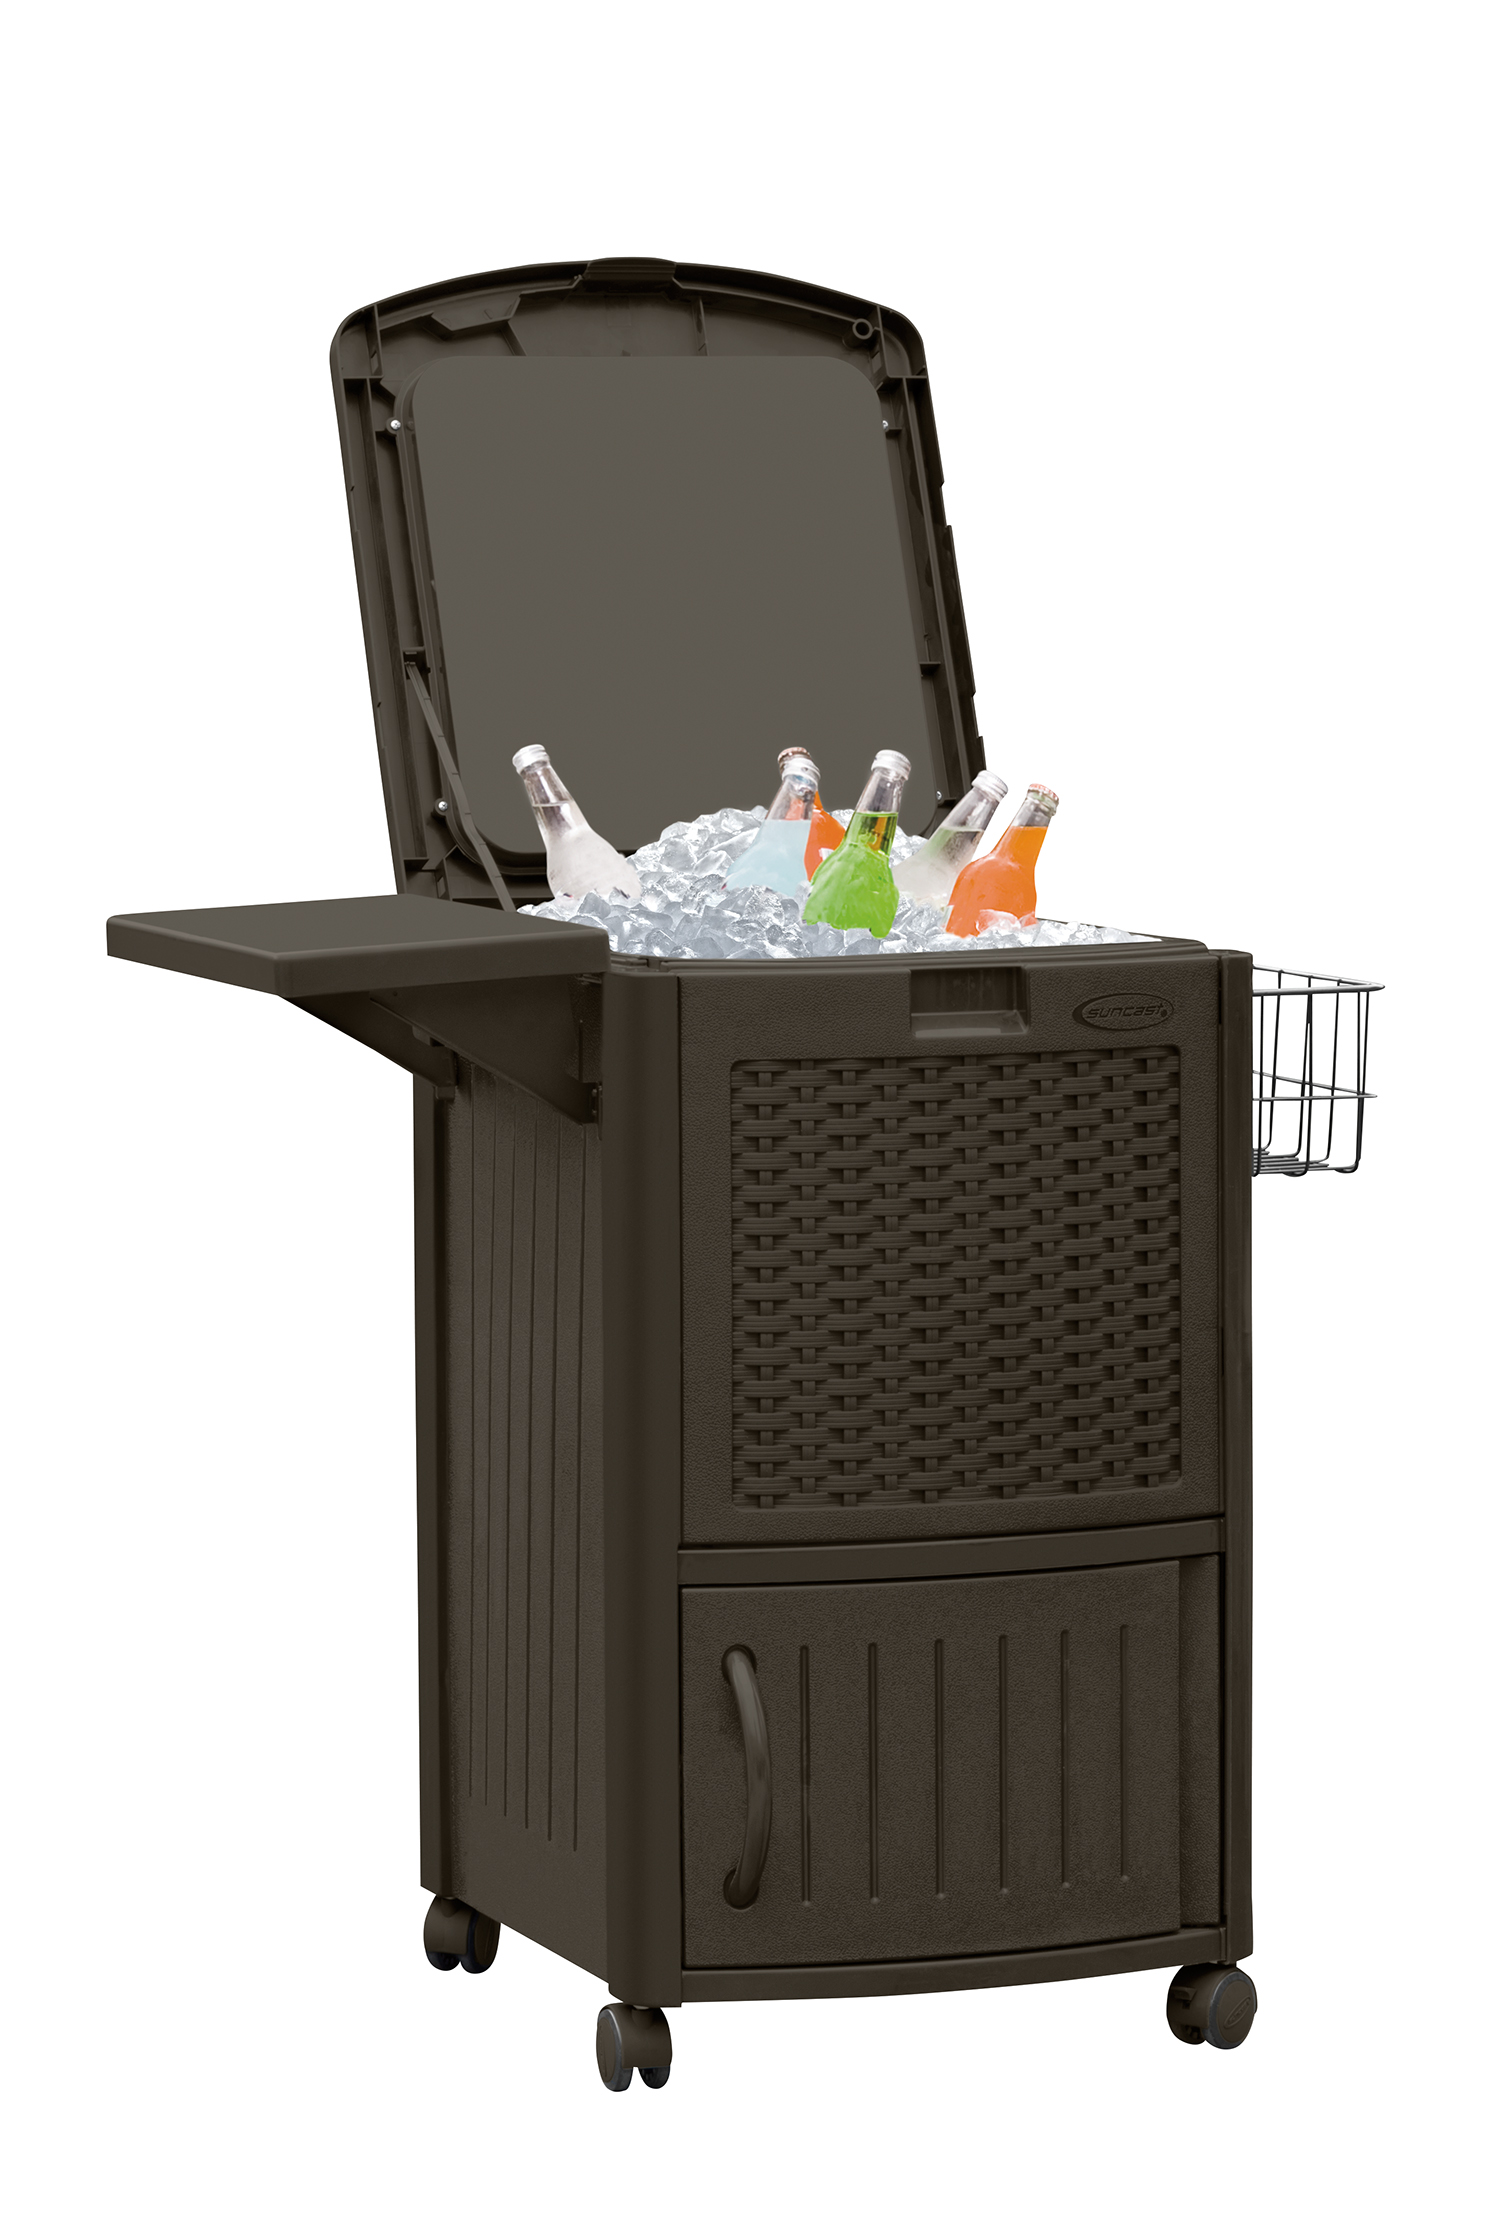 Suncast Resin Wicker Cooler With Cabinet - Outdoor Living